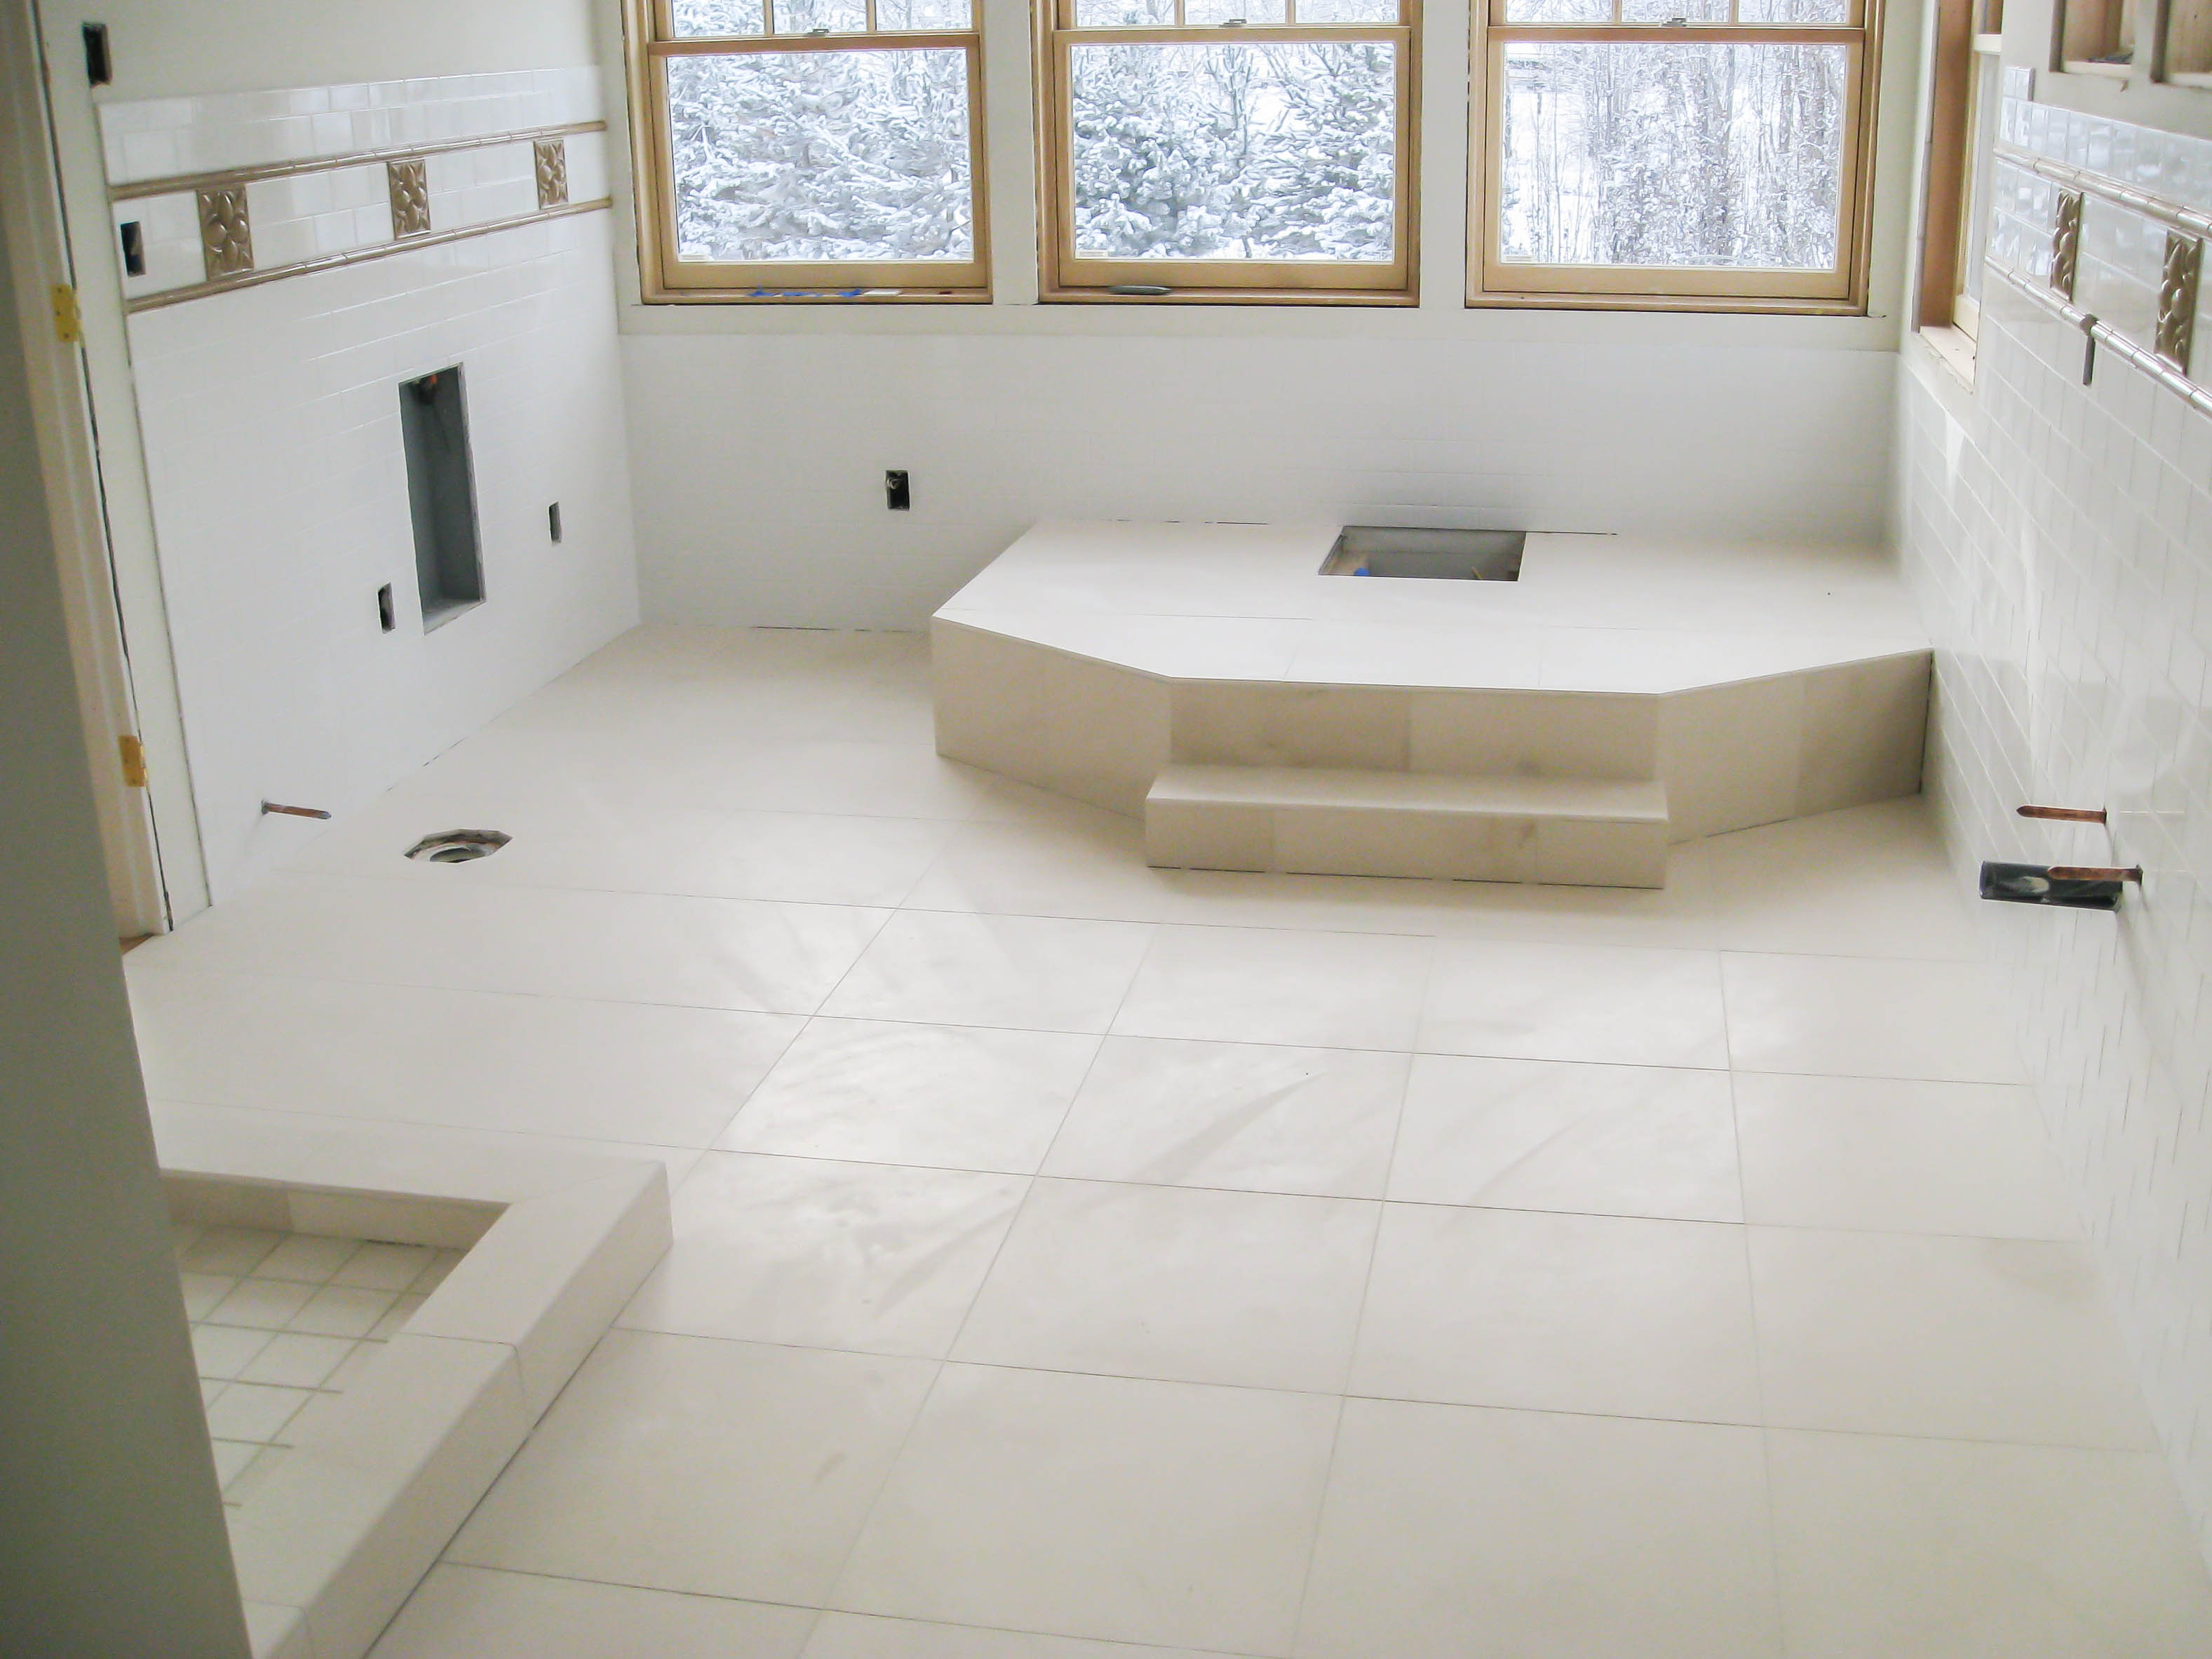 Bathroom Floors Seattle Tile Contractor Irc Tile Services: images of bathroom tile floors